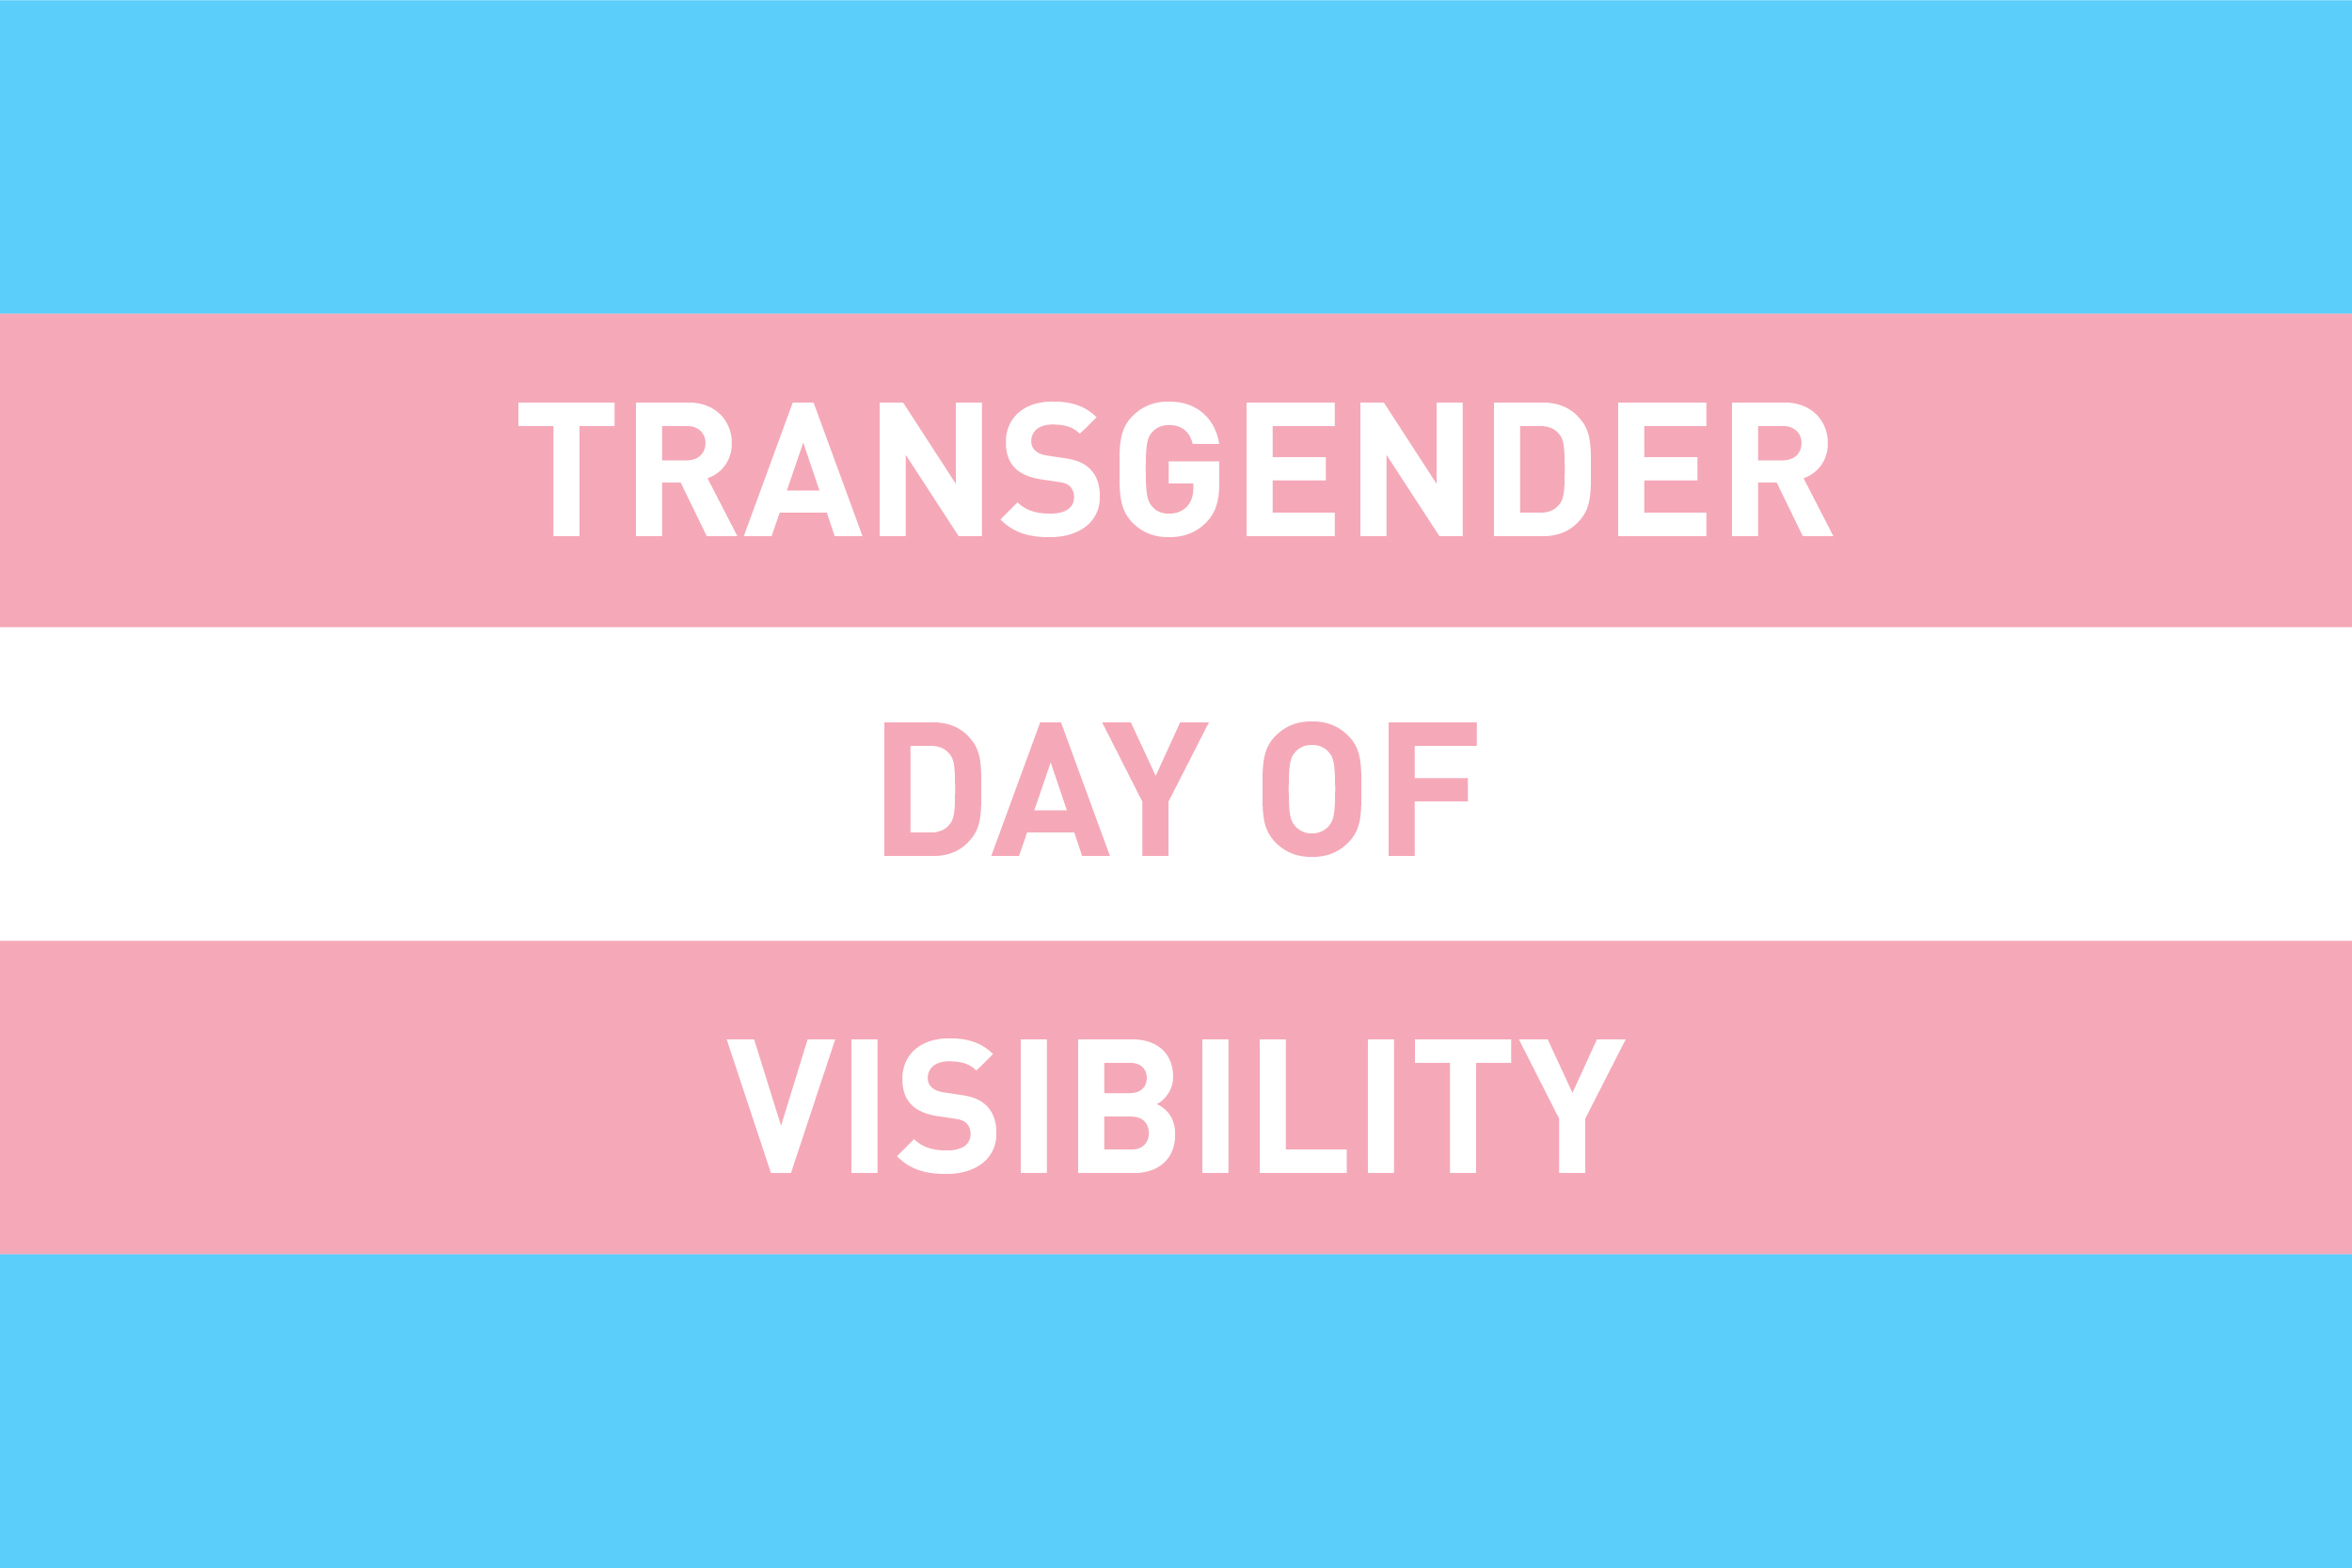 Transgender Day of Visability Image - Flag Colours